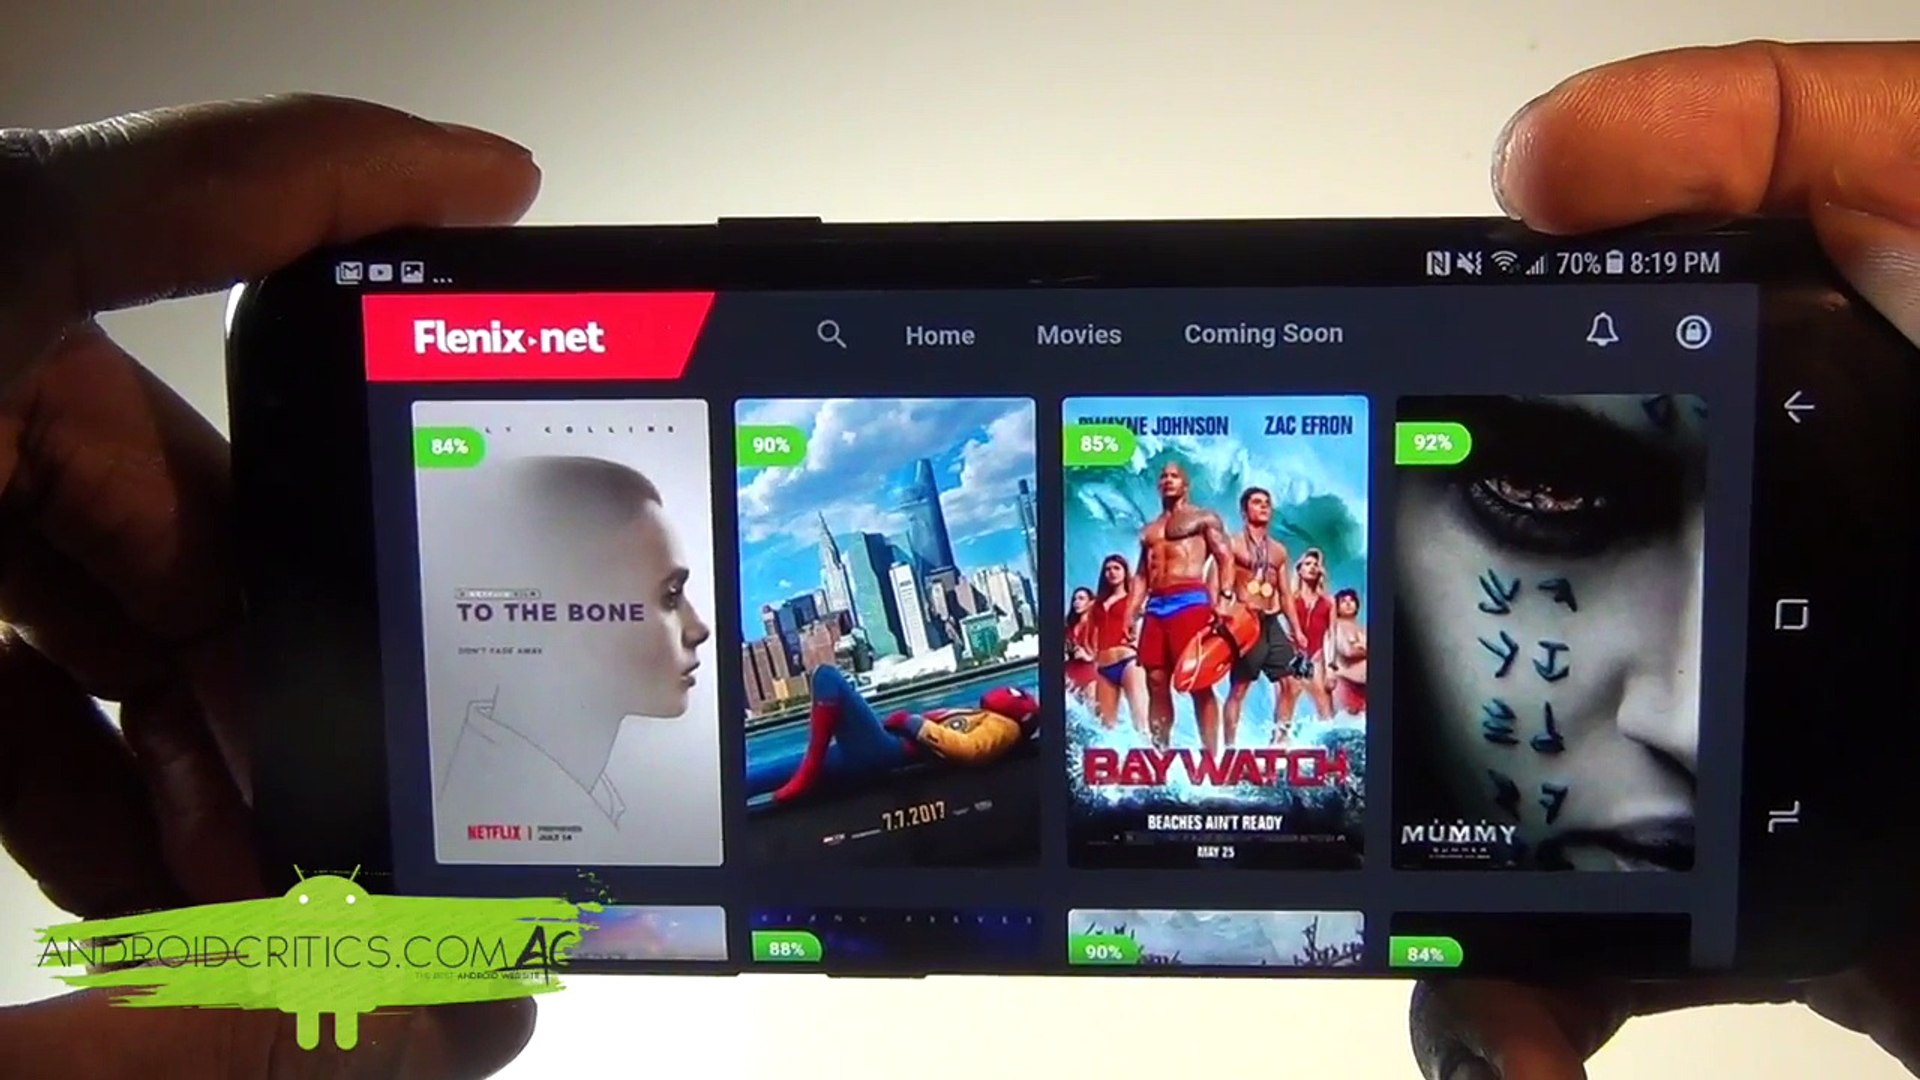 Flenix Android App-AMAZING App To Watch Movies For Free On Any Android